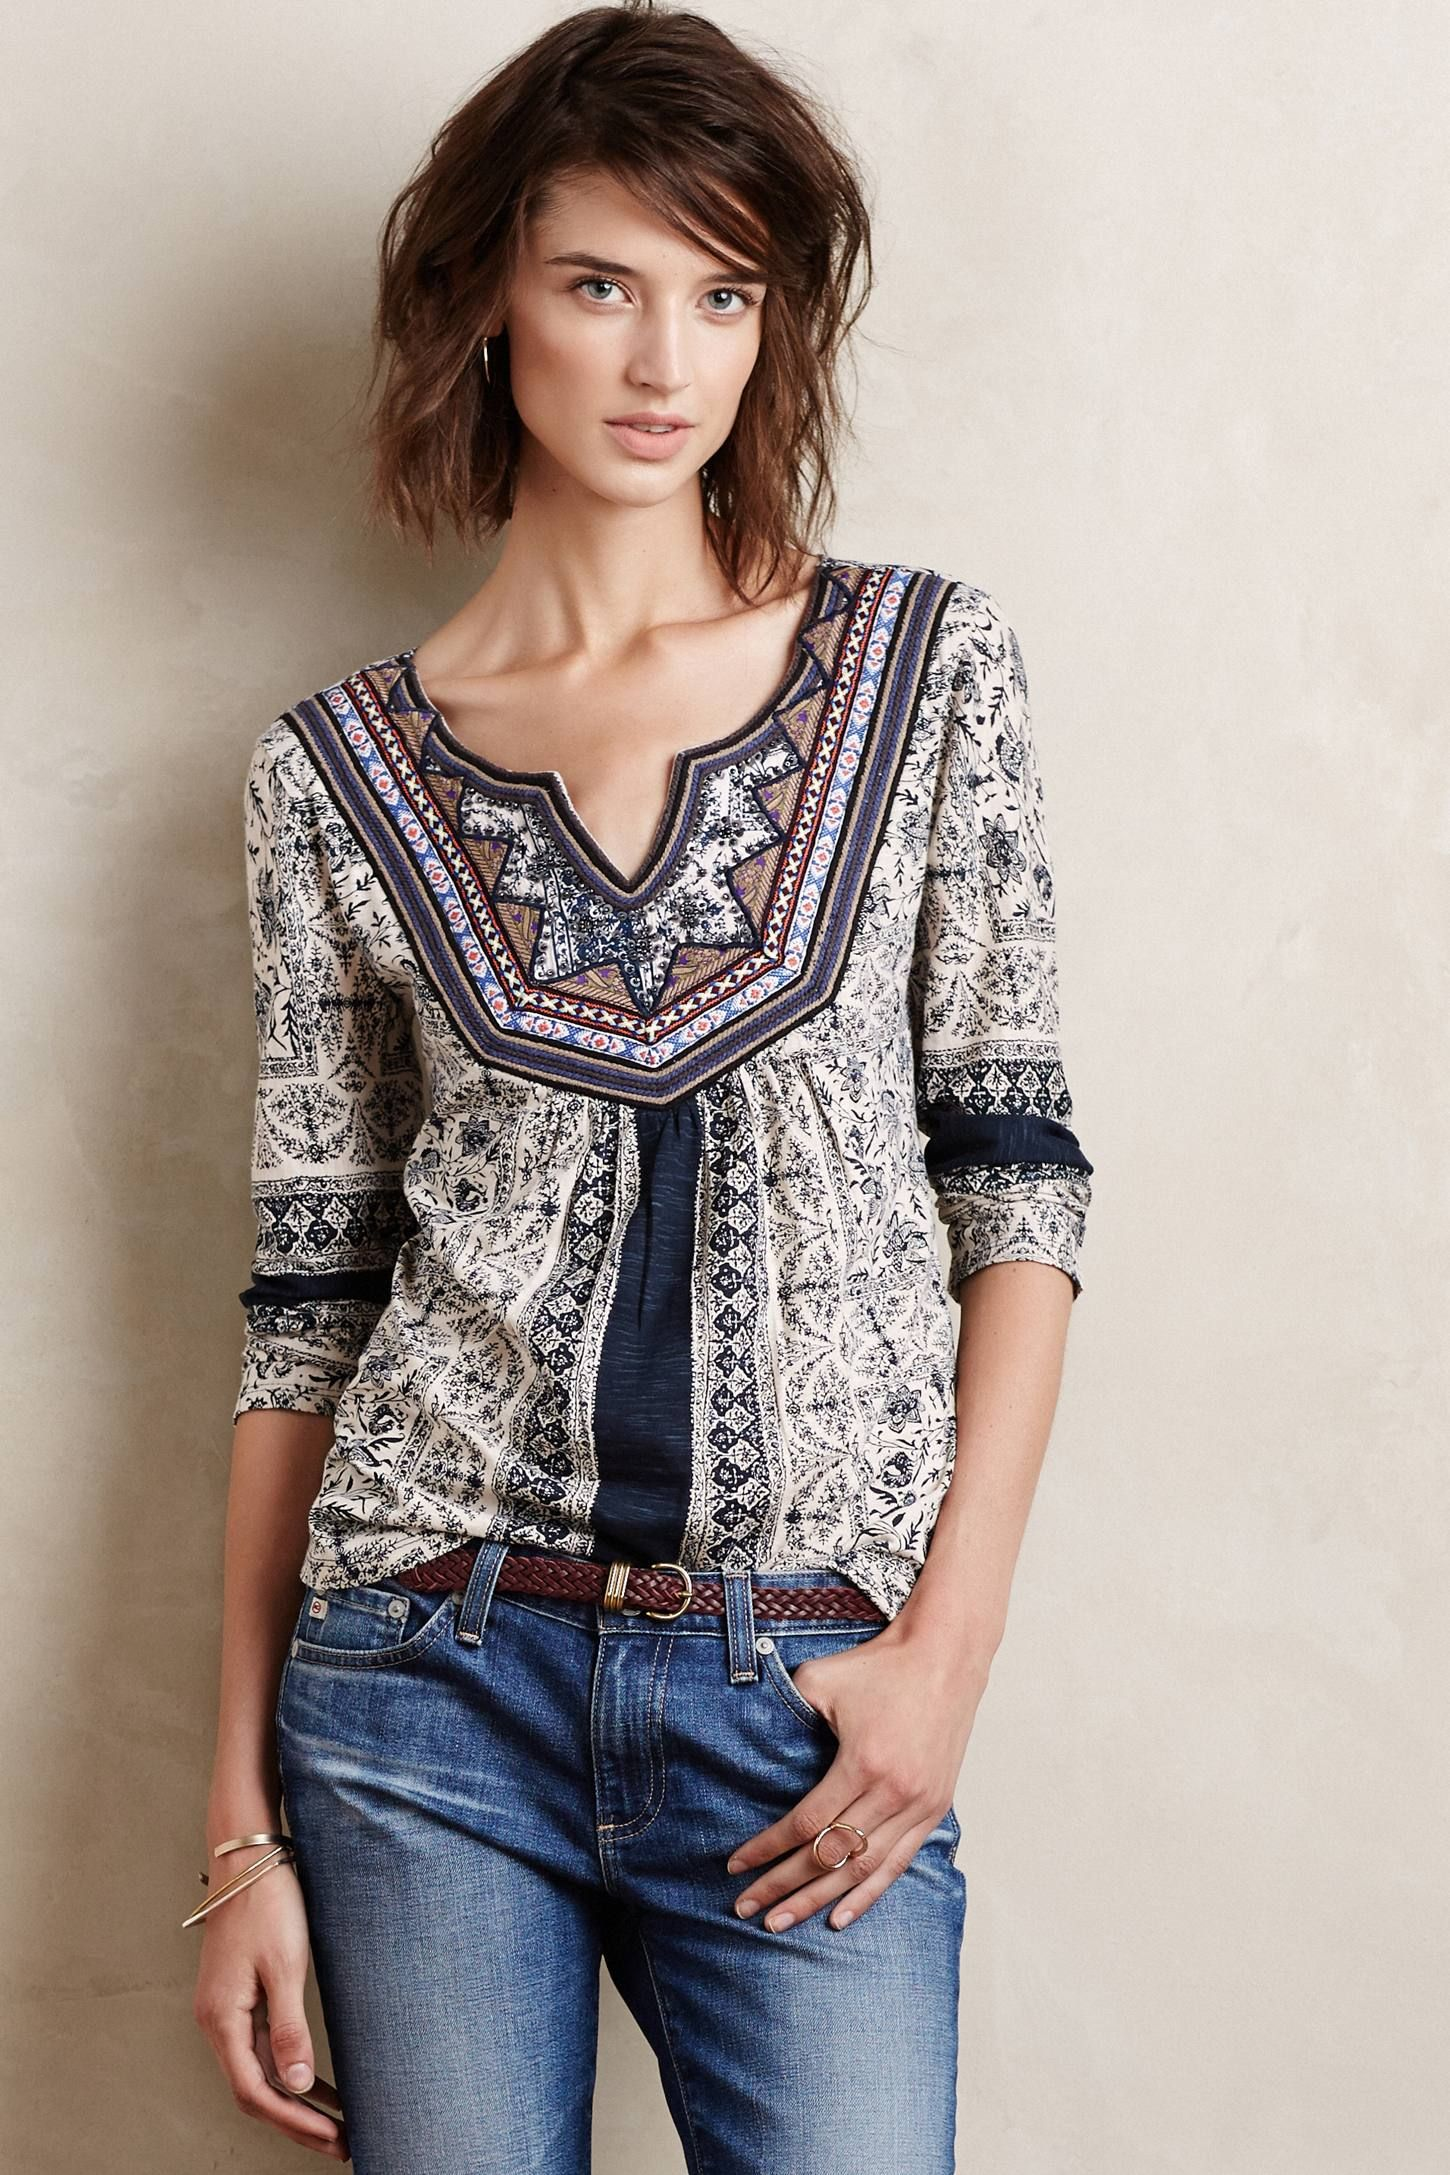 a71047cd6eb196 Silverpoint Peasant Top | Style | Fashion, Boho fashion, Tops